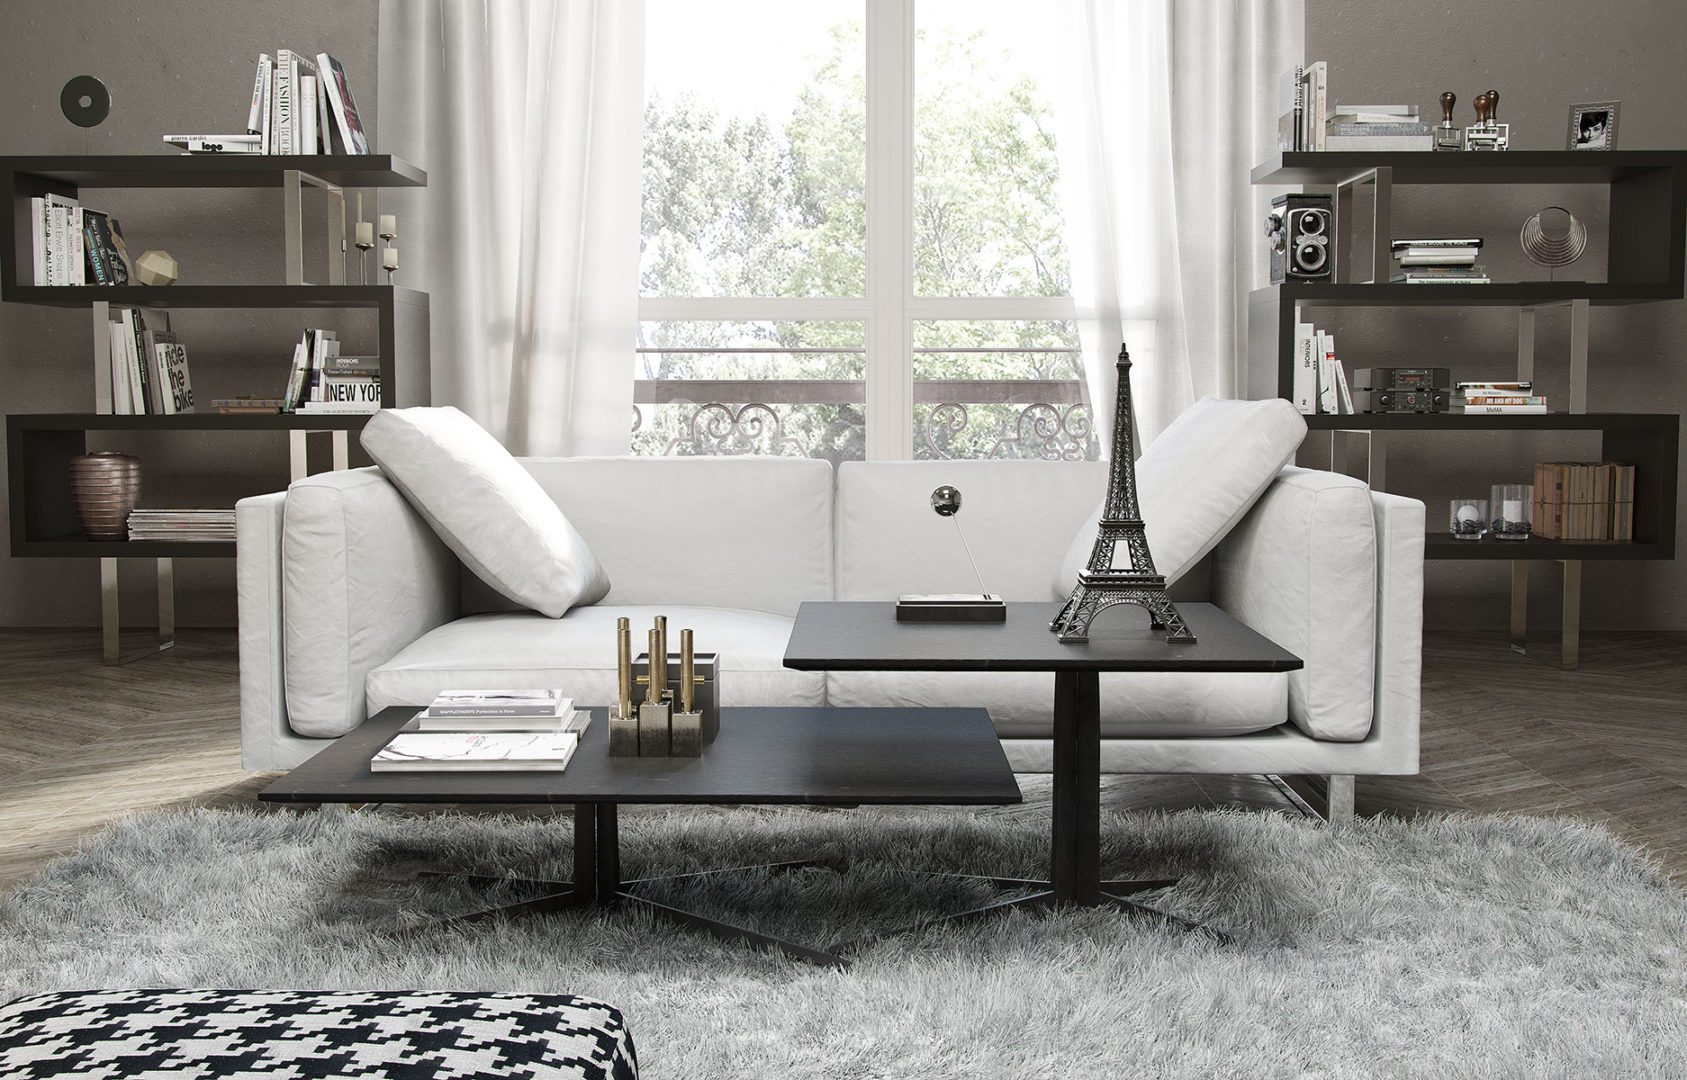 HUDSON-NESTED-COFFEE-TABLES-CORRECTED-2-1080